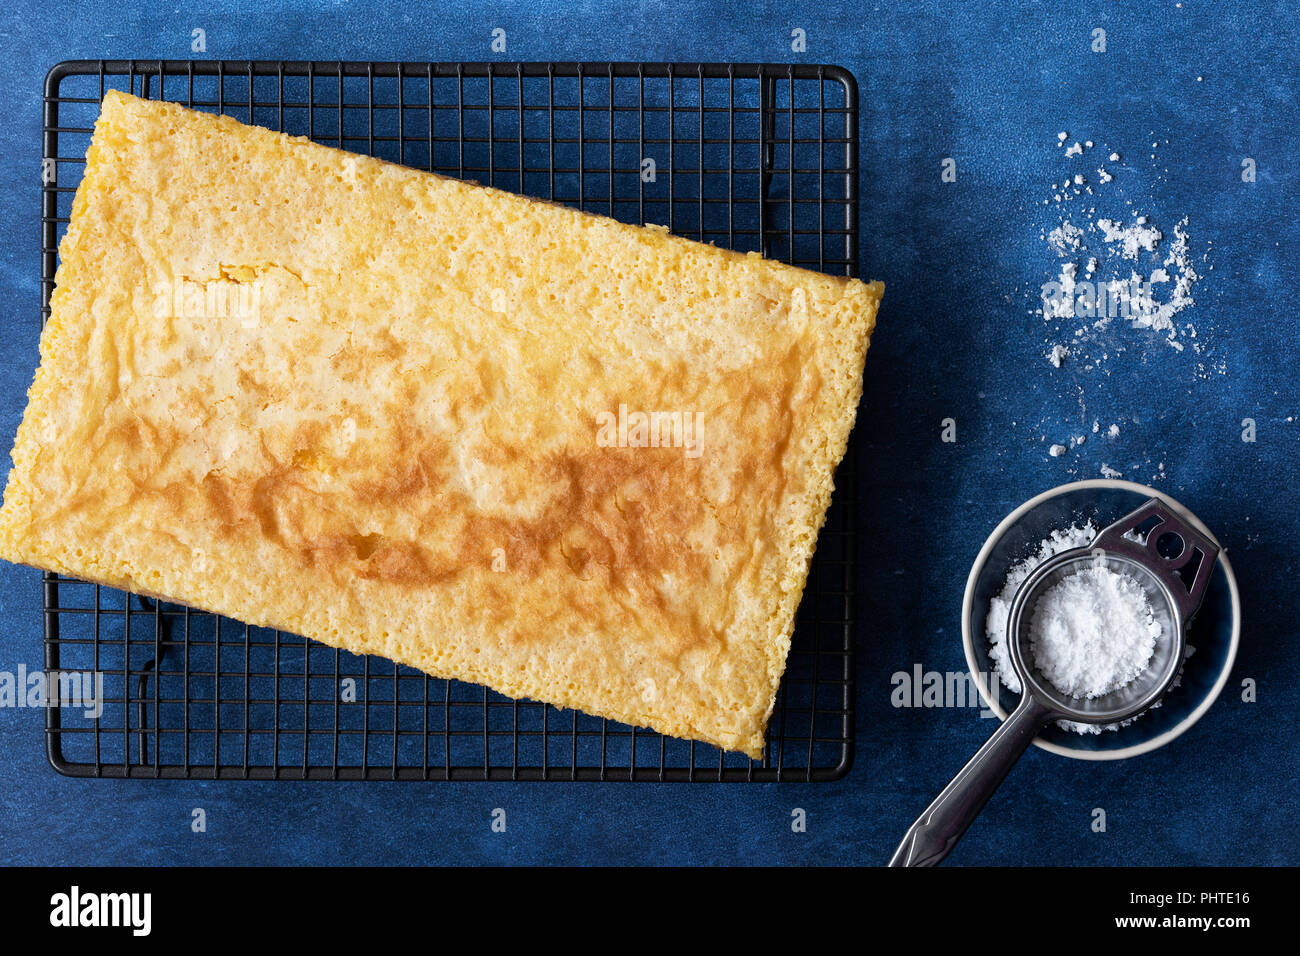 Homemade lemon slice with icing powder and sifter. - Stock Image